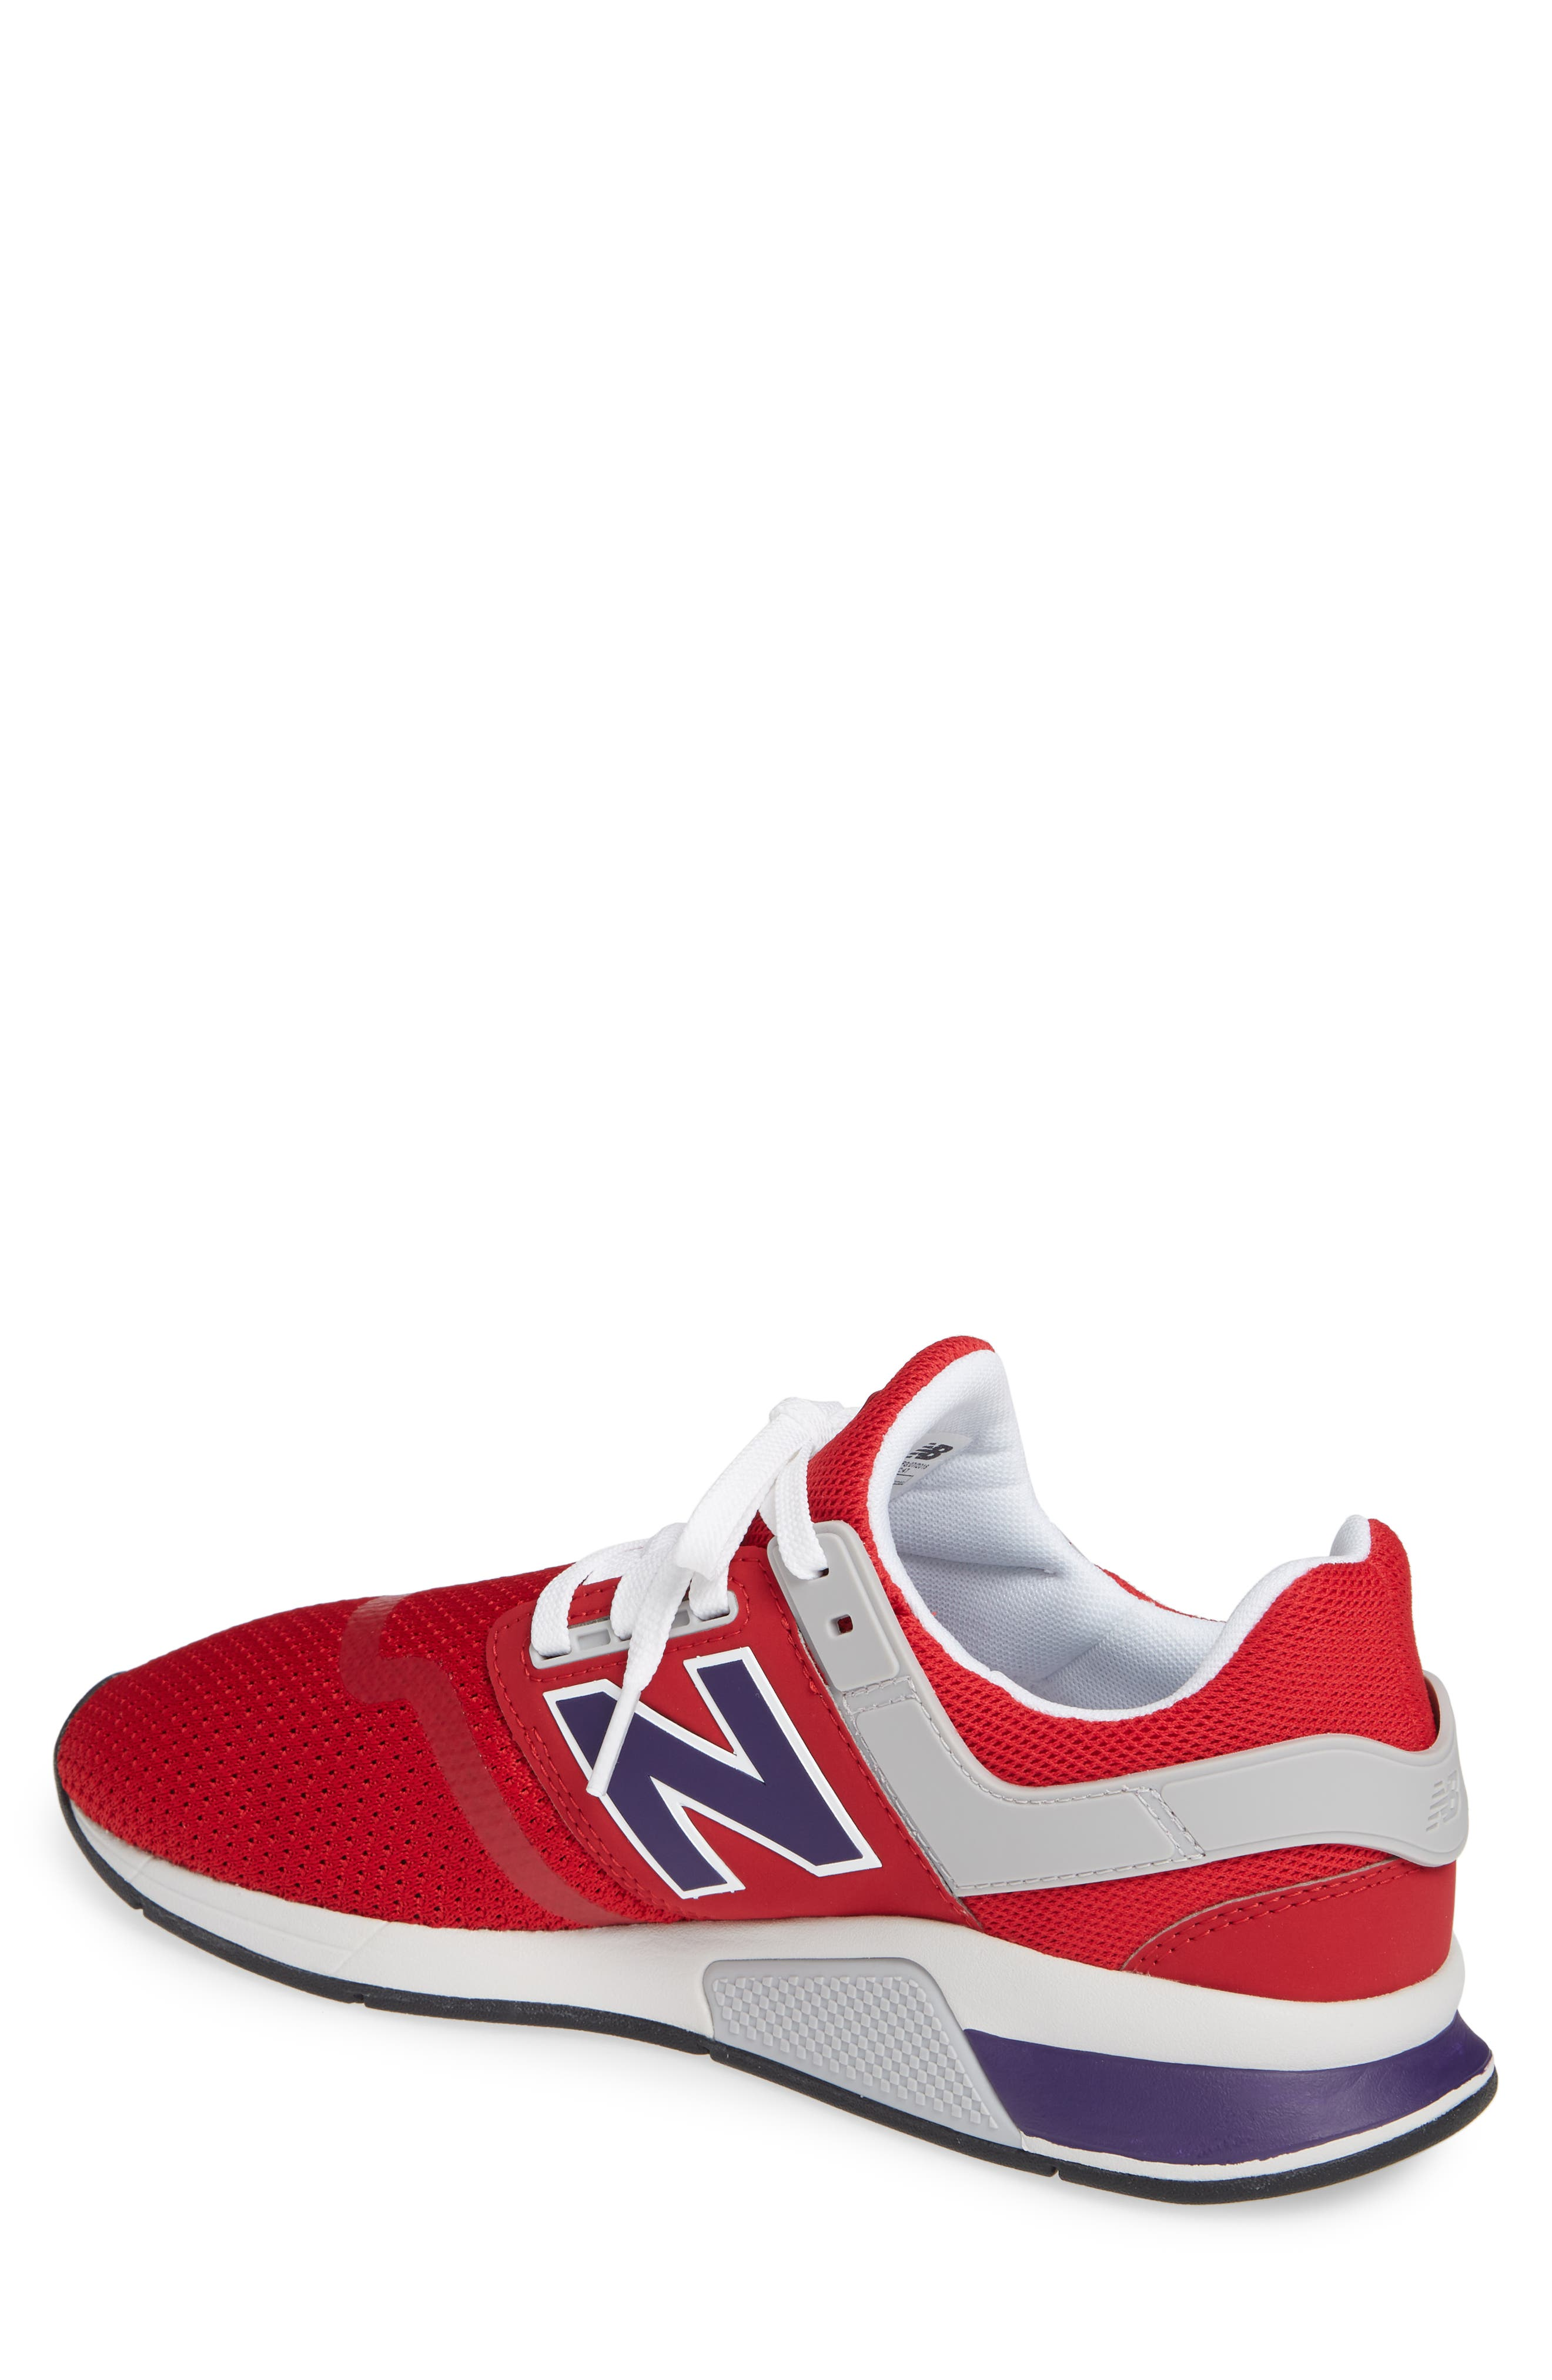 247 Sneaker,                             Alternate thumbnail 2, color,                             TANGO RED SYNTHETIC/ MESH